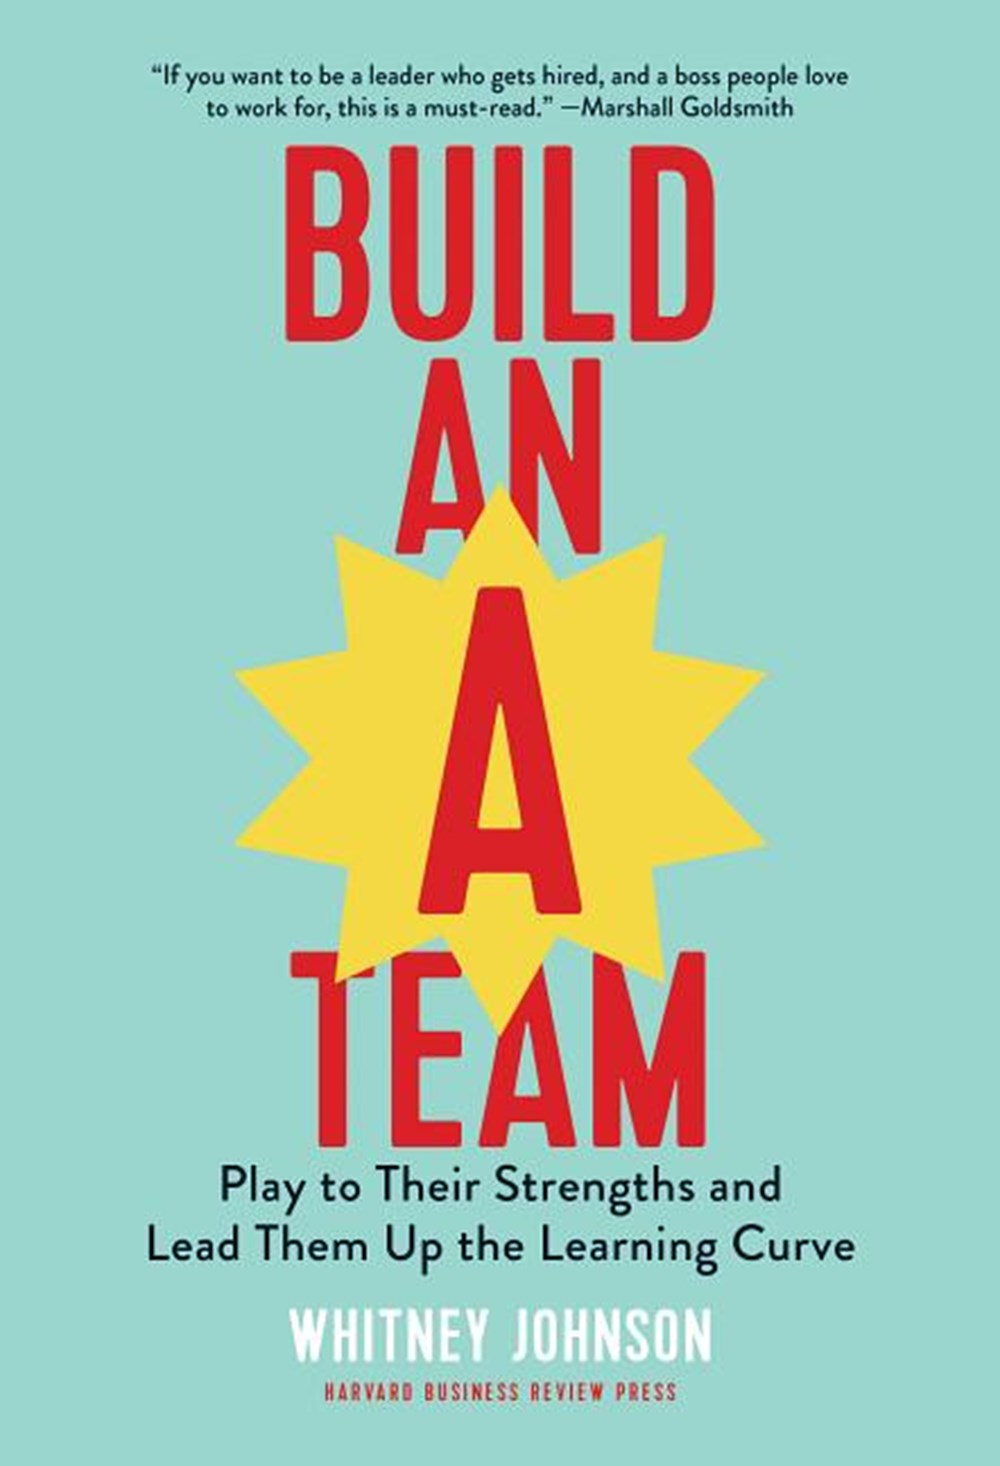 Build an A-Team Play to Their Strengths and Lead Them Up the Learning Curve